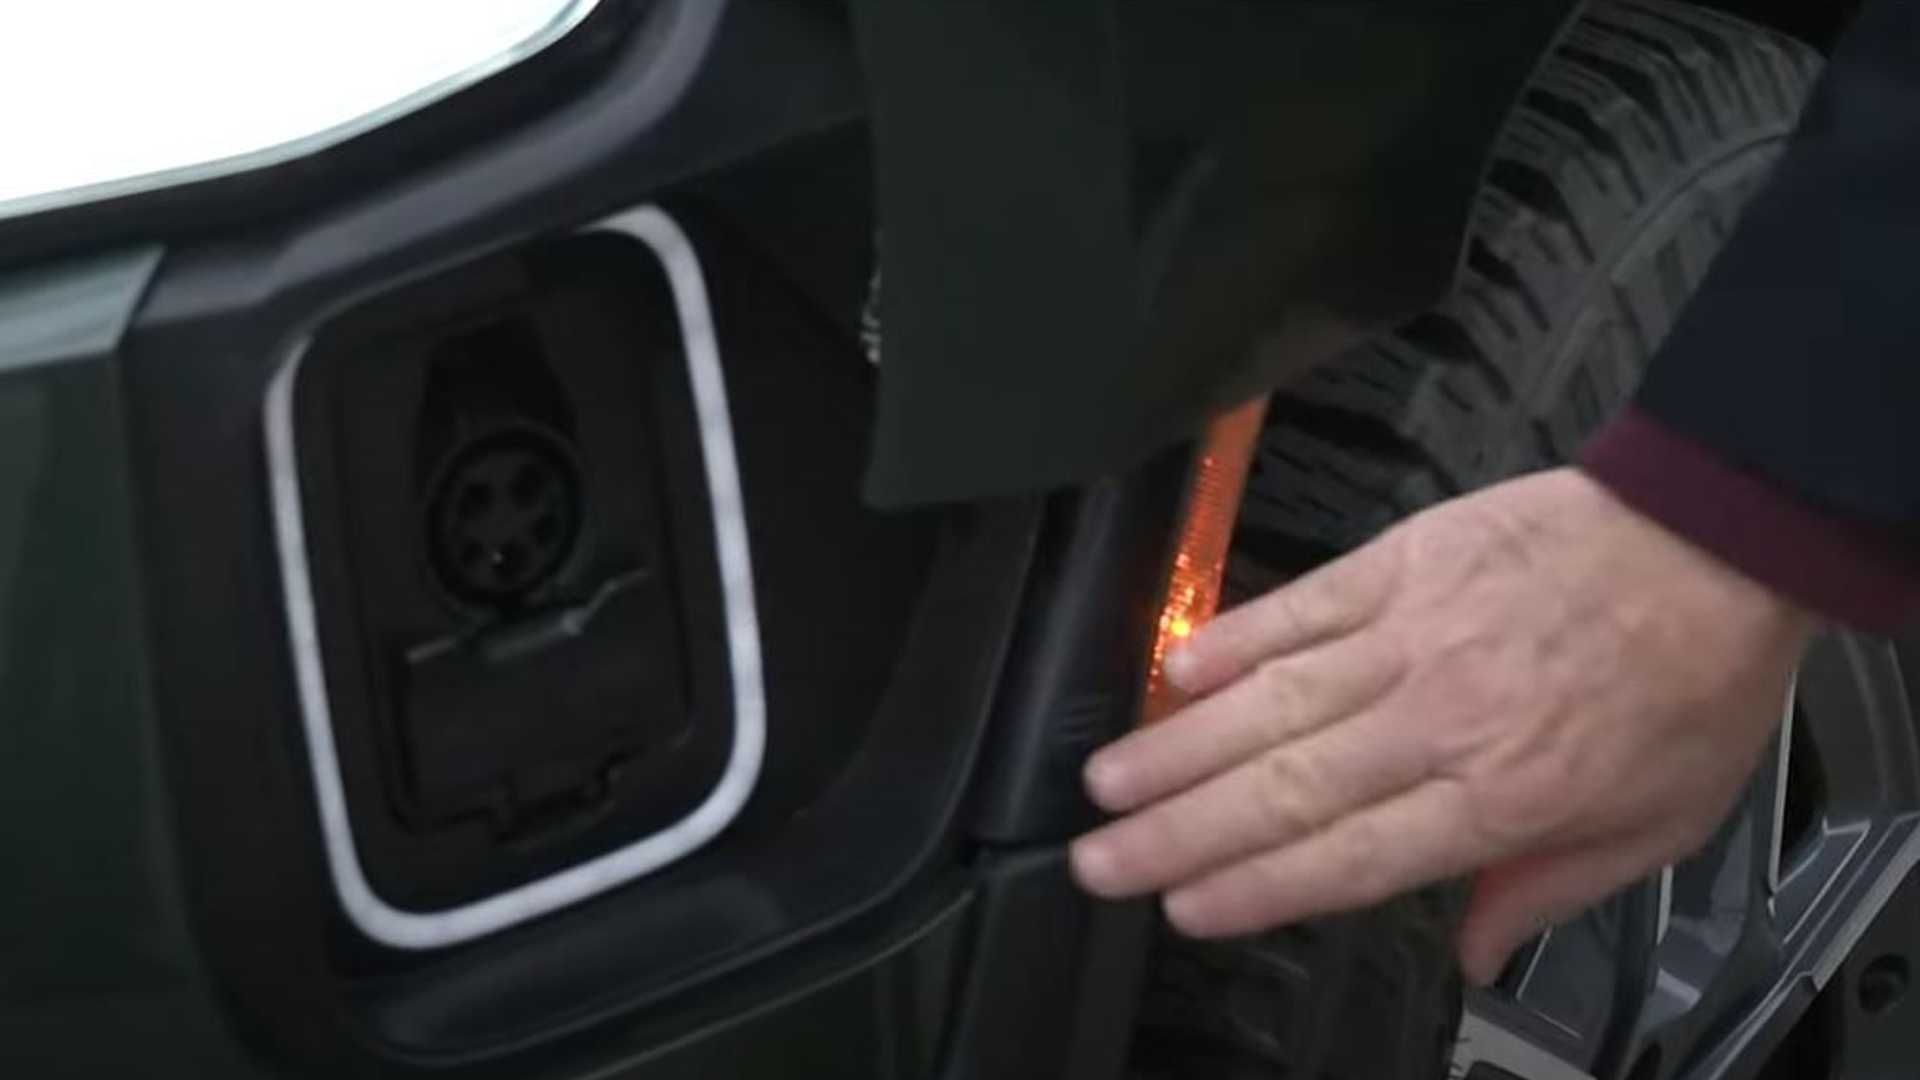 Rivian R1T Electric Truck On Display, See How Its Charging Port Opens